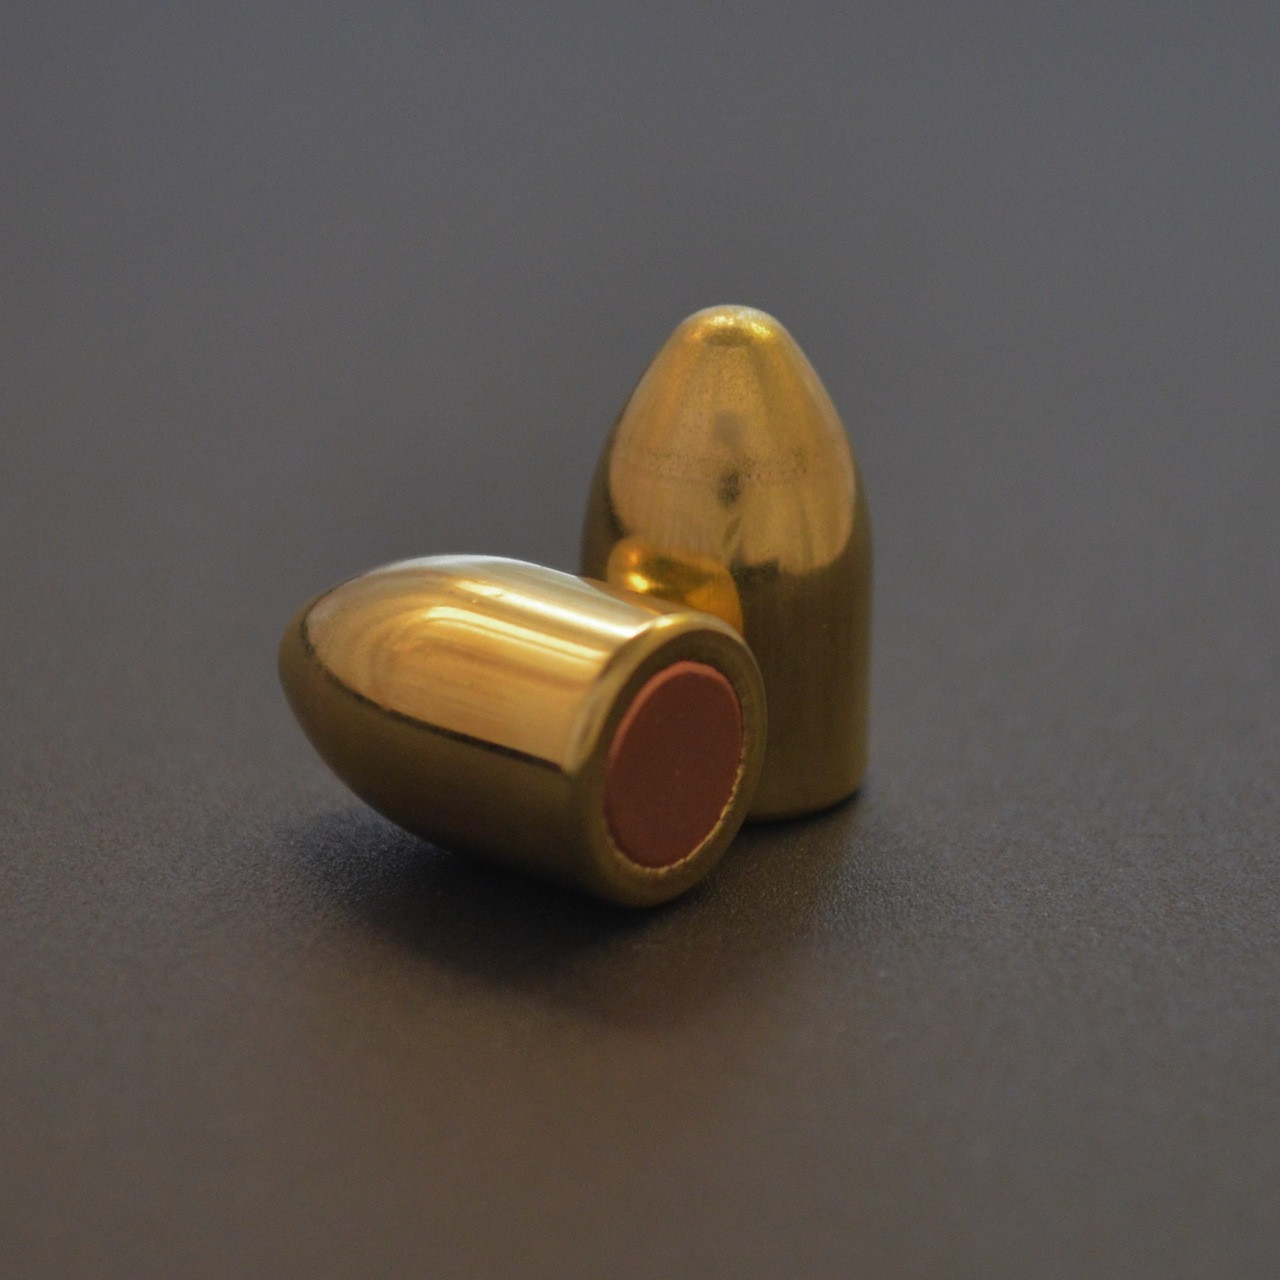 9mm/124gr CMJ -1,000ct